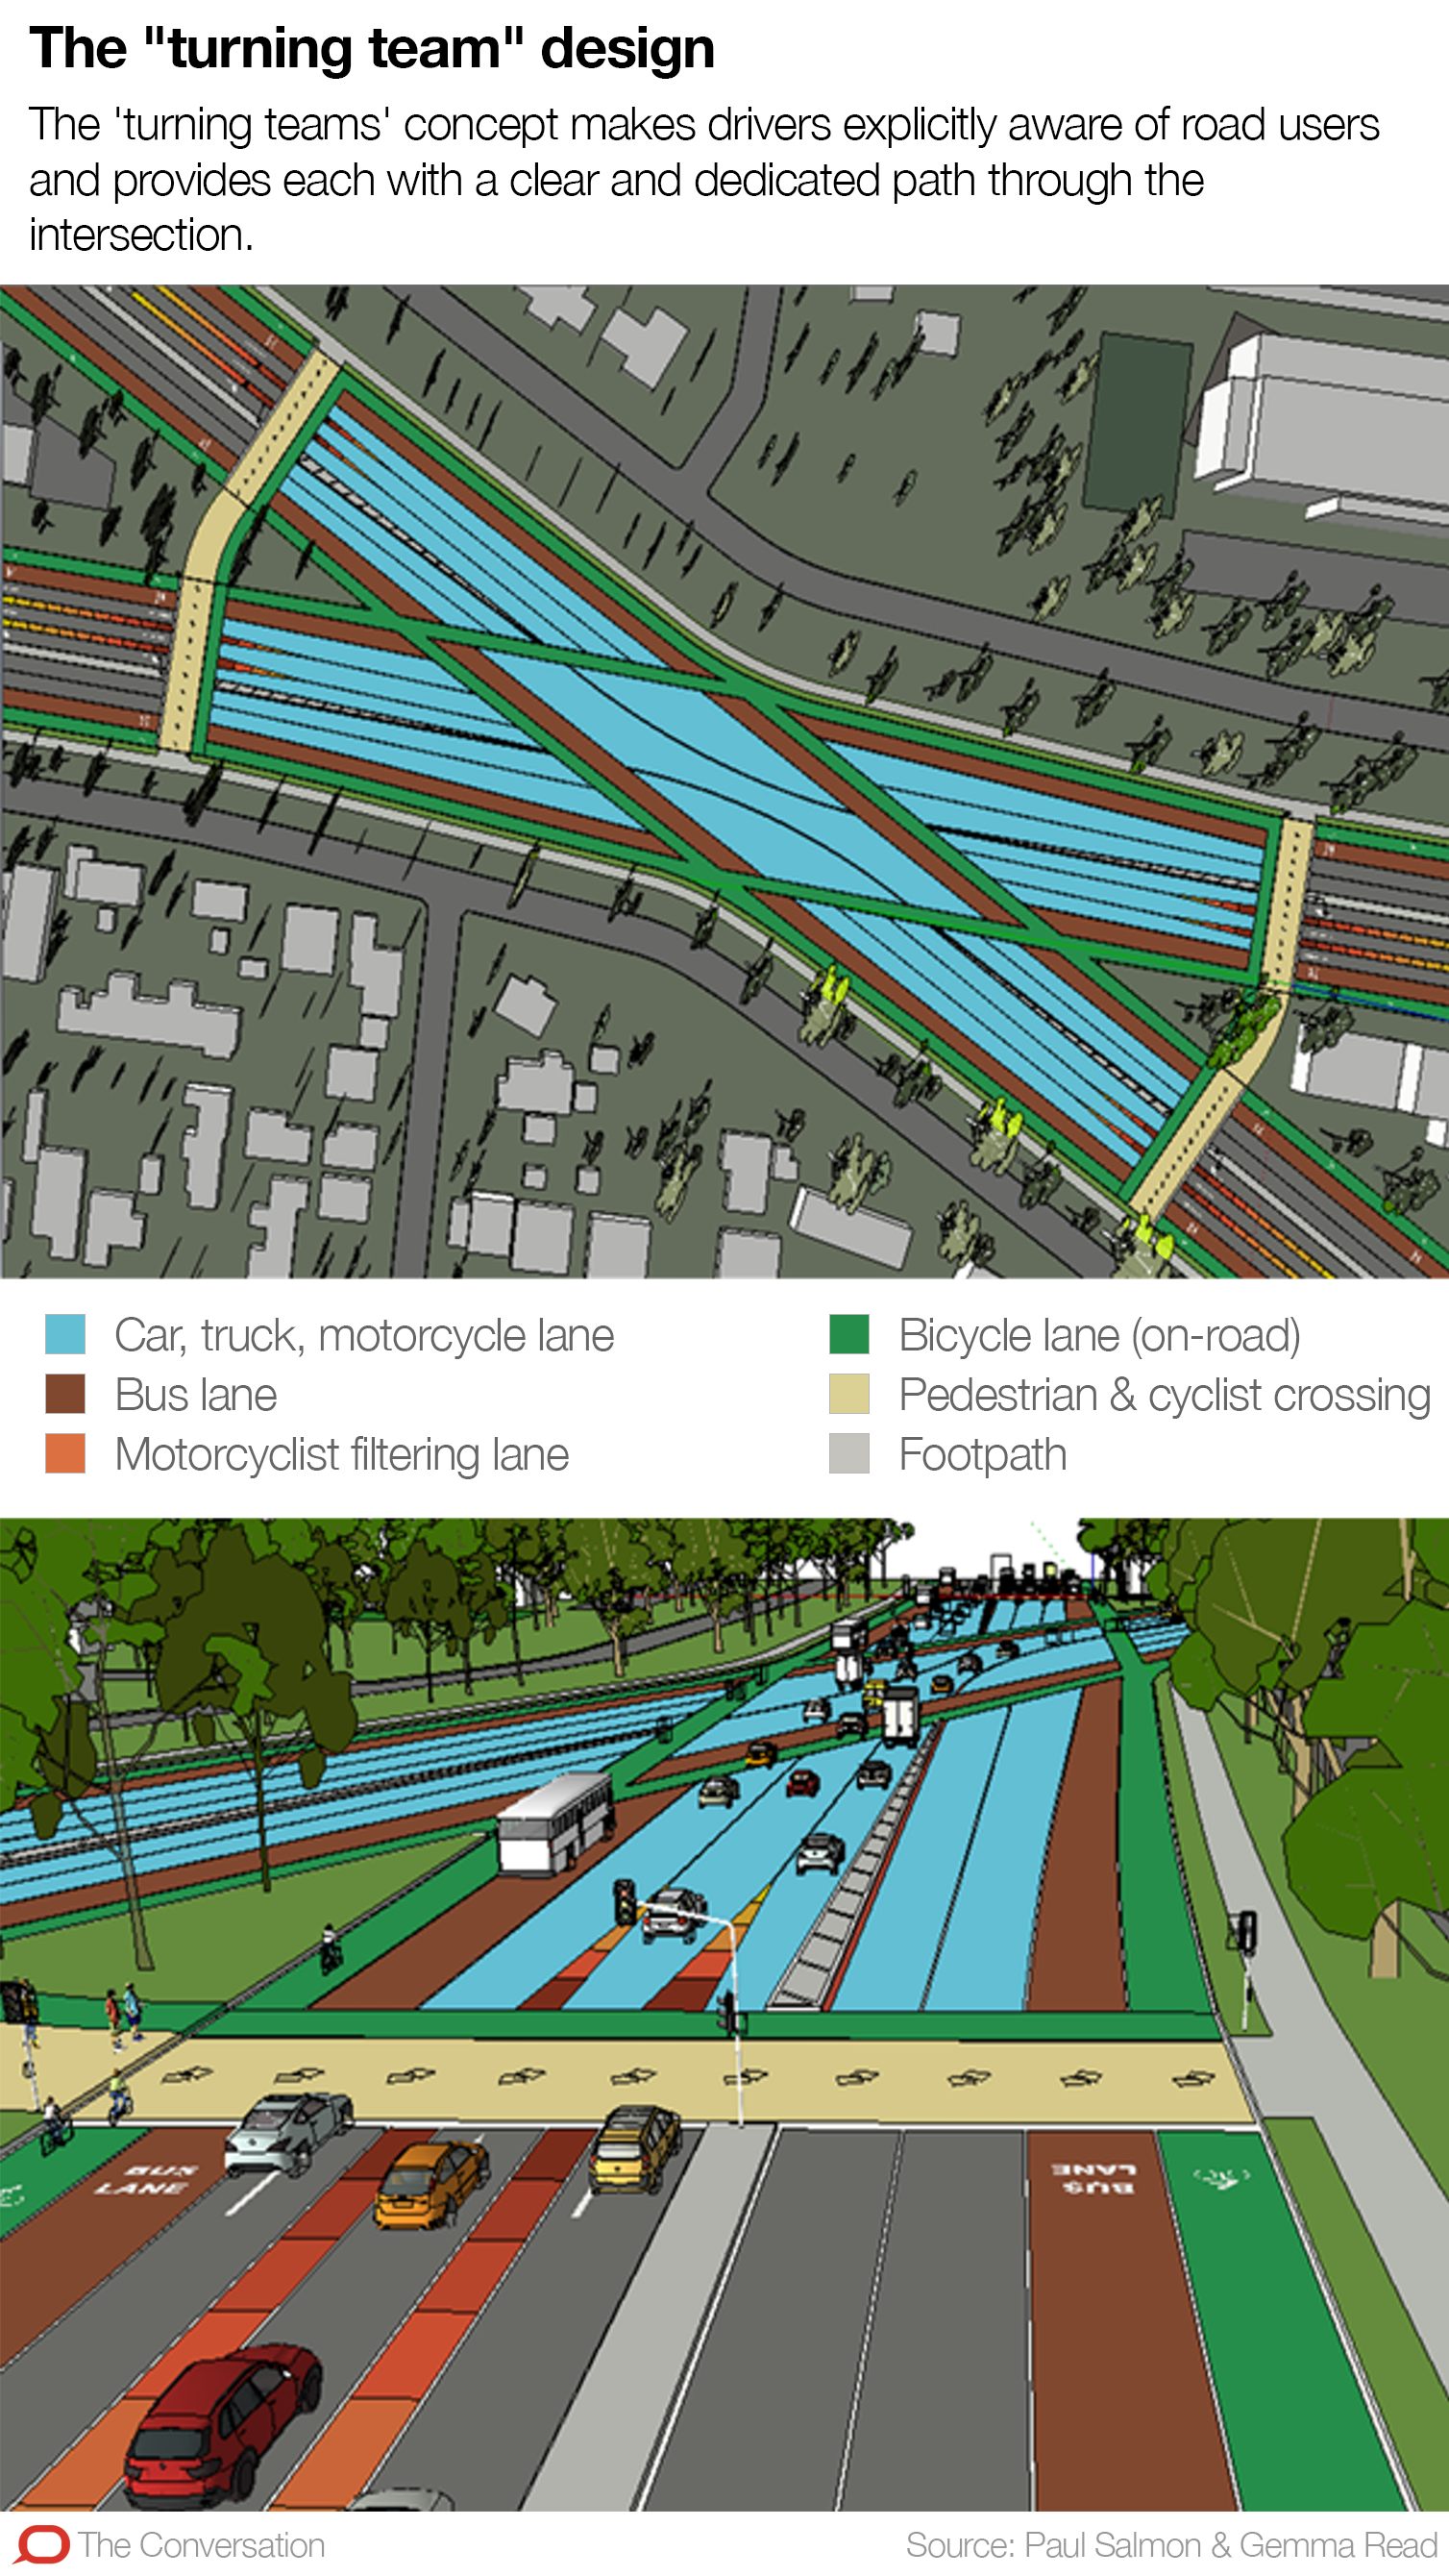 We can design better intersections that are safer for all users